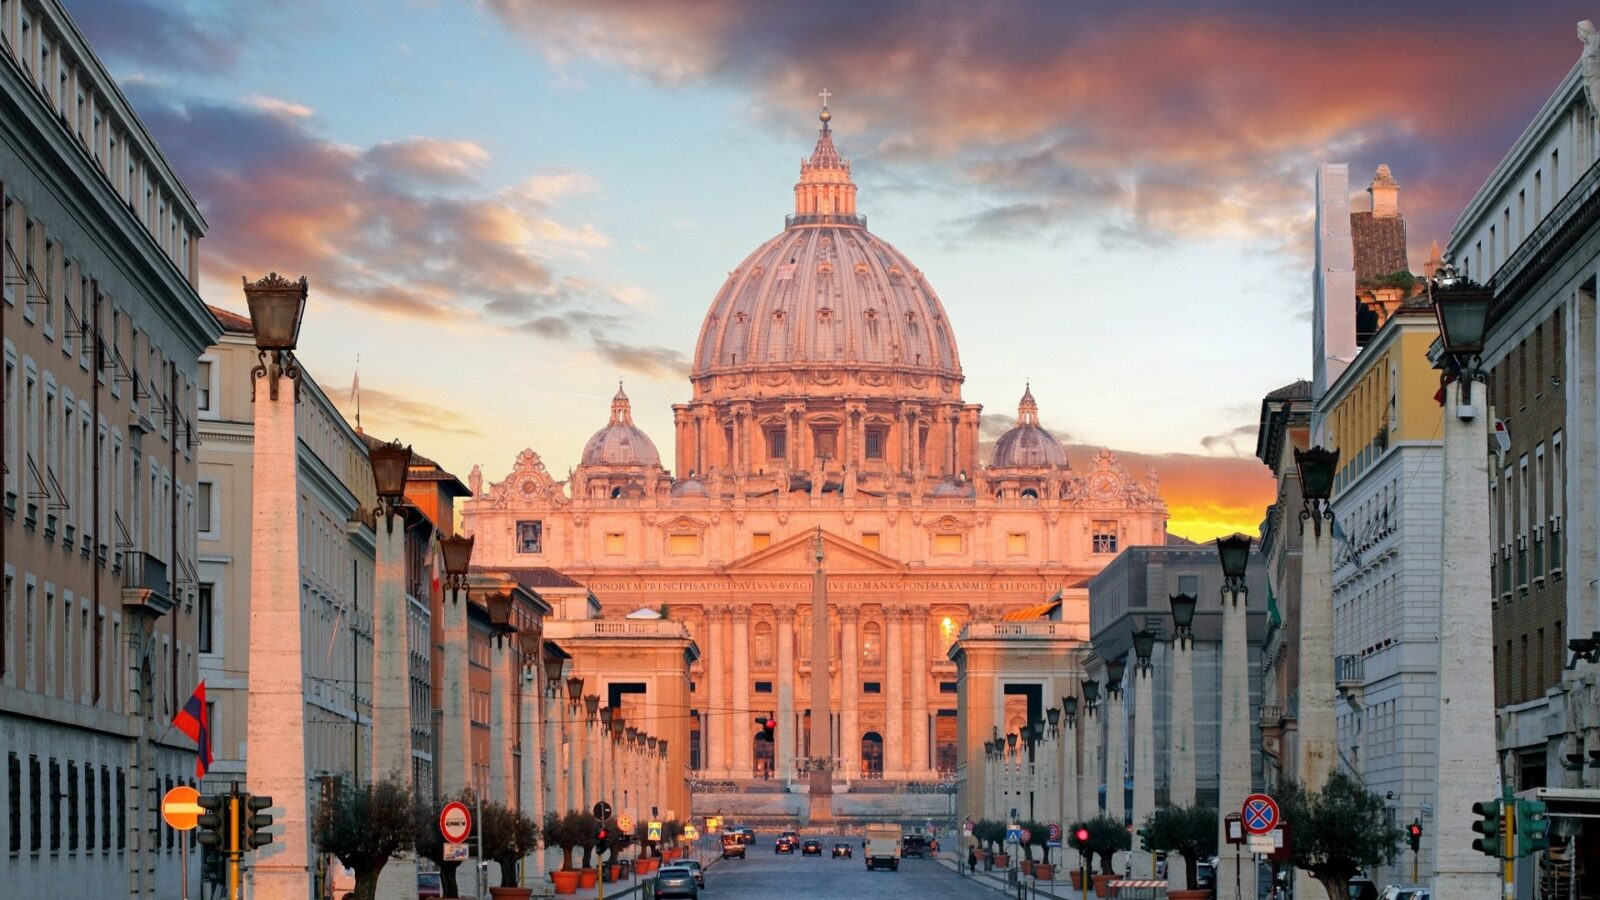 Vatican Museums by Night